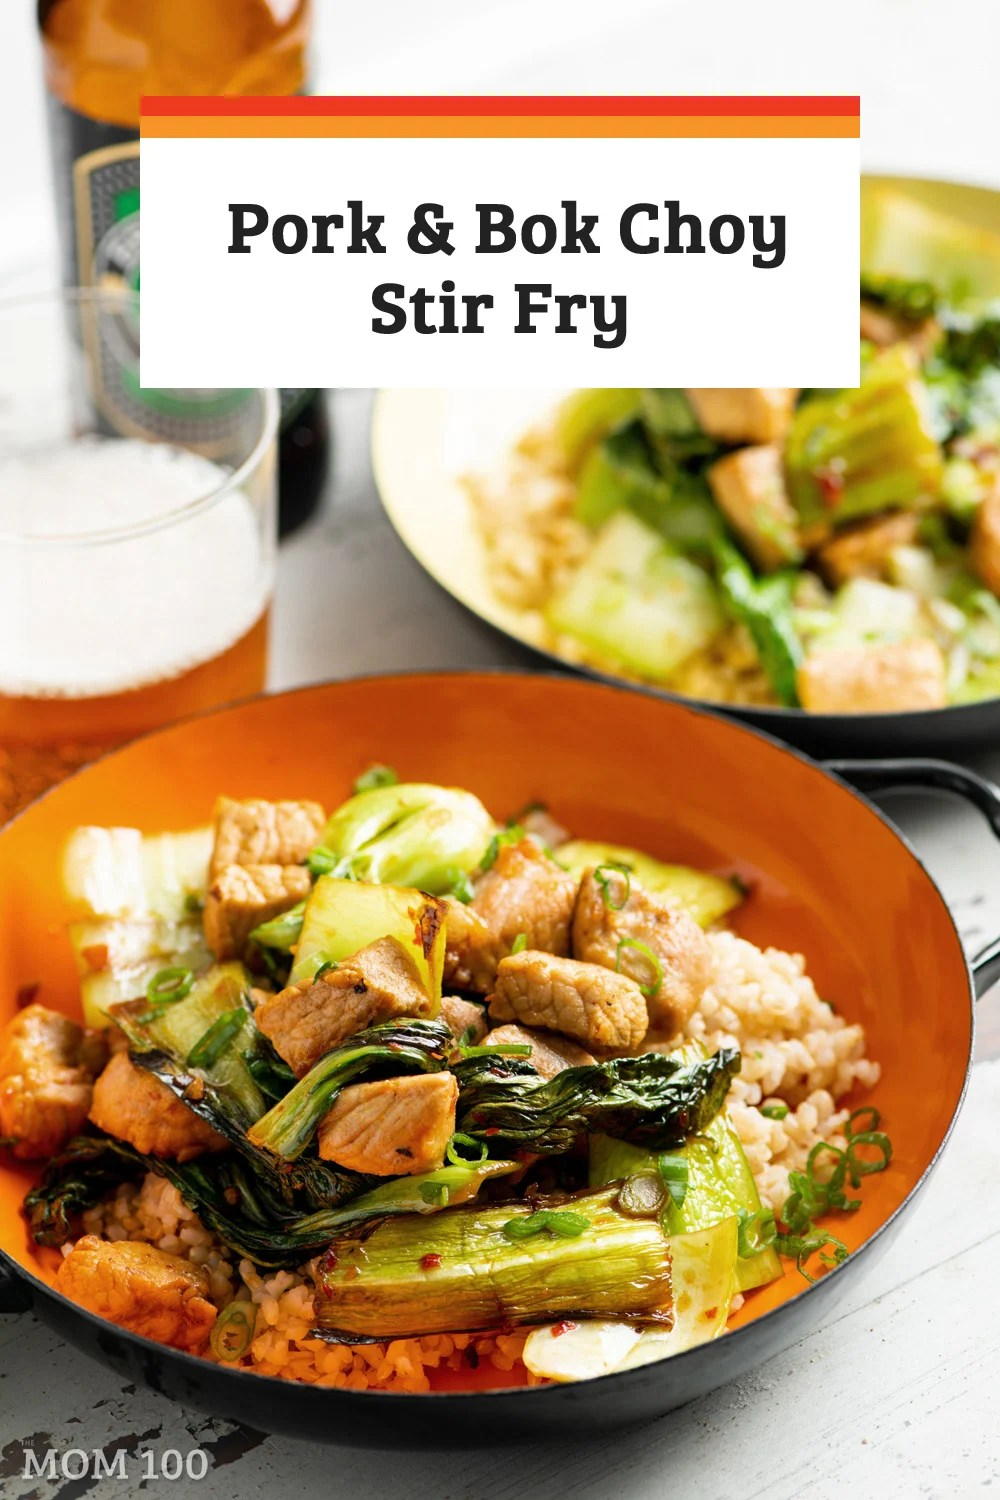 Pork and Bok Choy Stir Fry: Super simple, but not short on flavor—and 20 minutes start to finish, including prepping the ingredients.